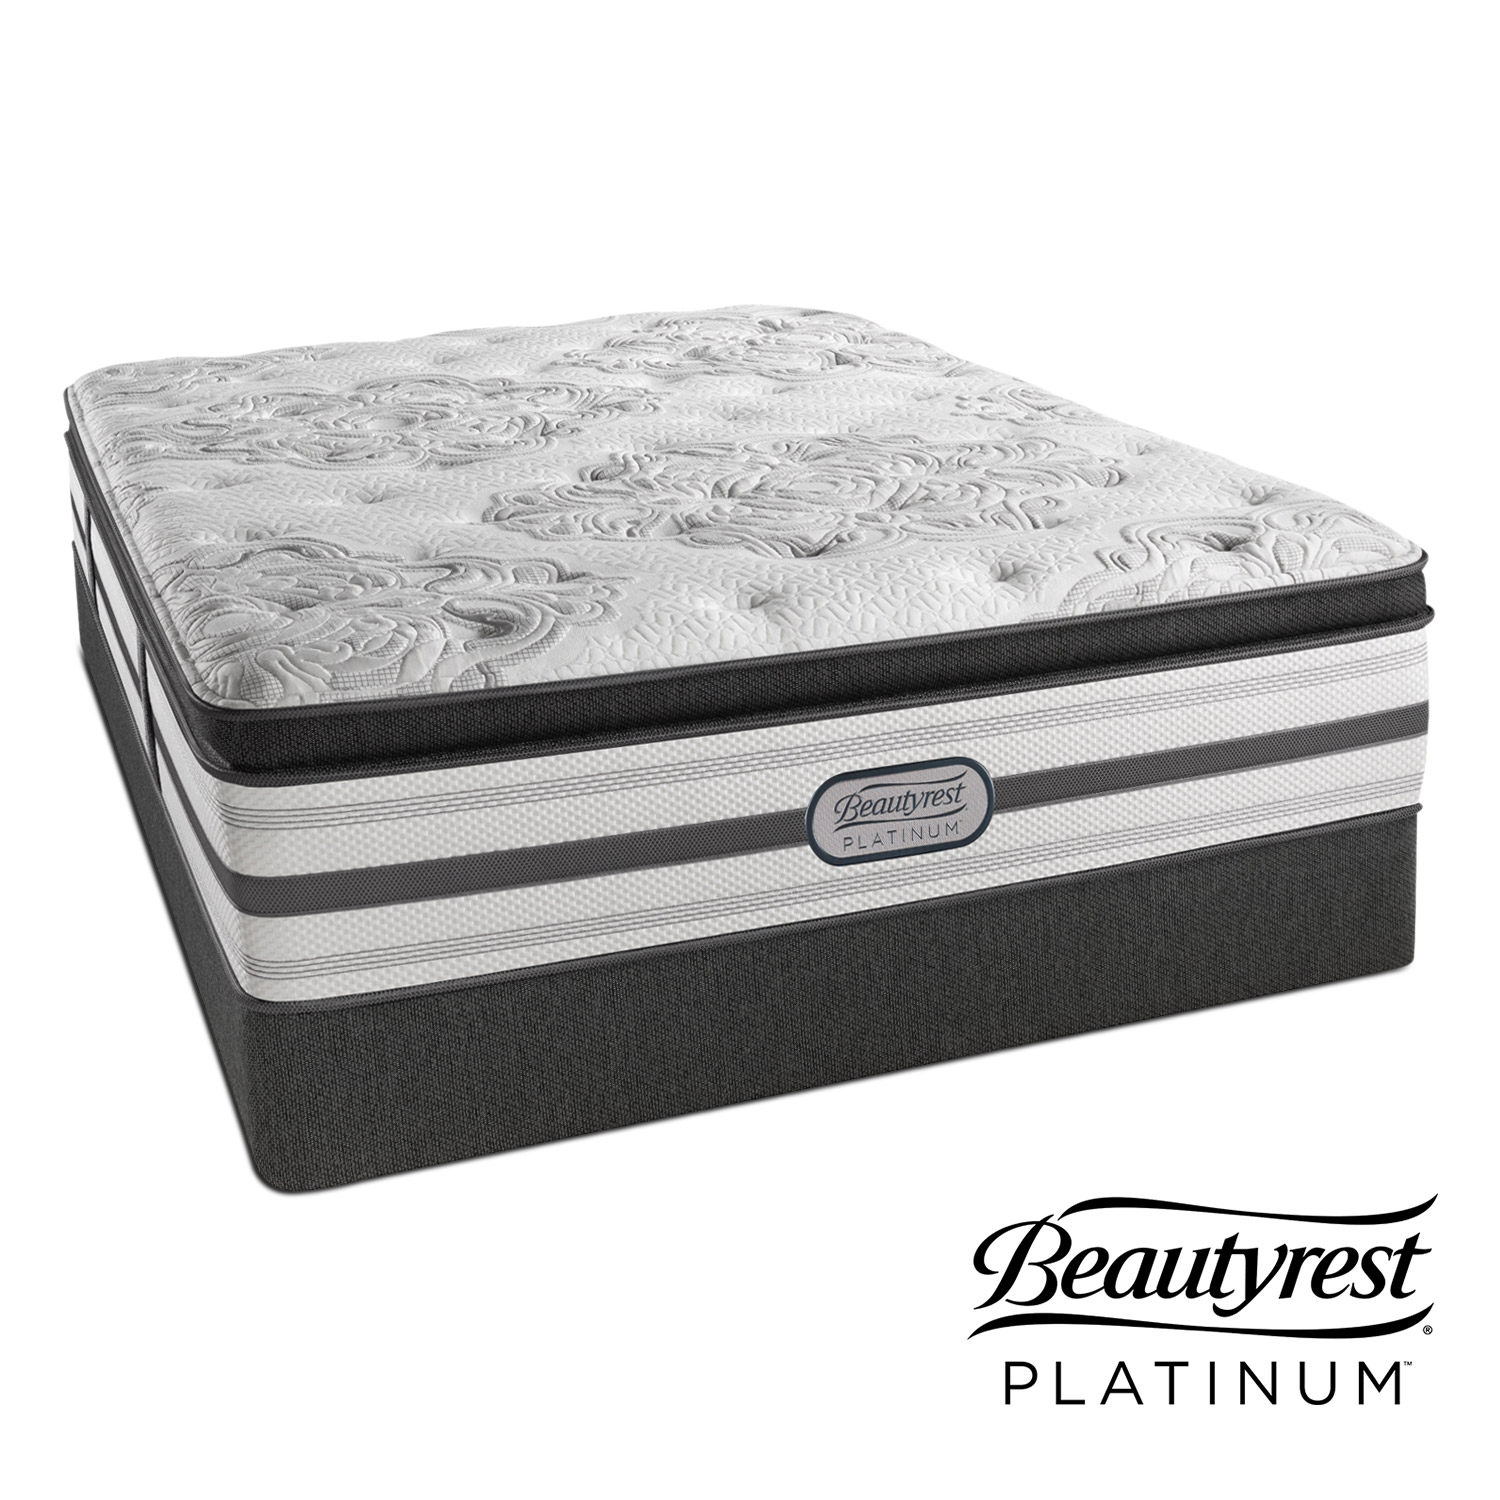 Mattresses and Bedding - Genevieve Plush Twin Mattress and Foundation Set